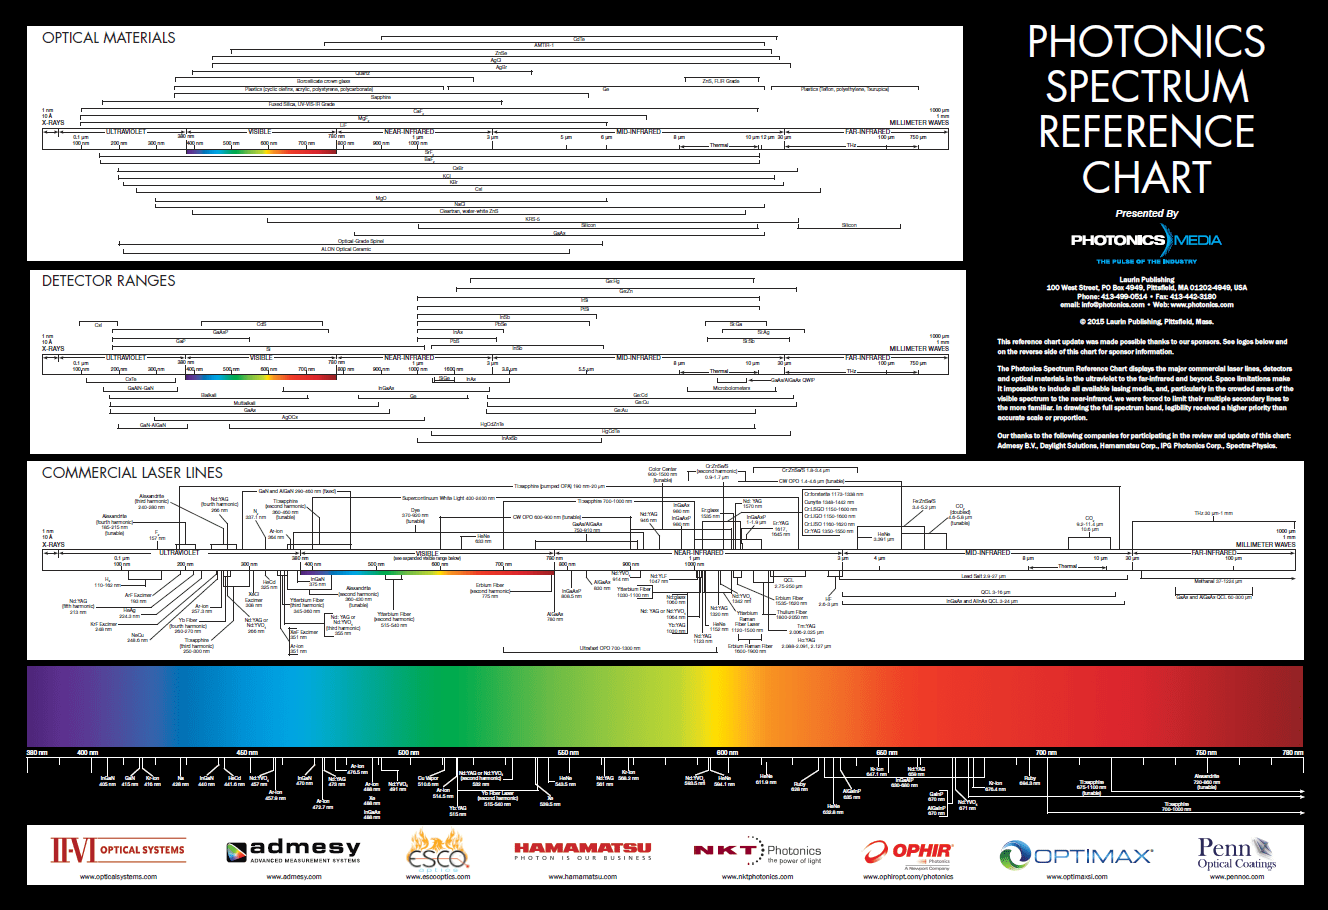 Photonics spectrum reference chart photonics media bookstore photonics spectrum reference chart photonics media bookstore photonics nvjuhfo Images